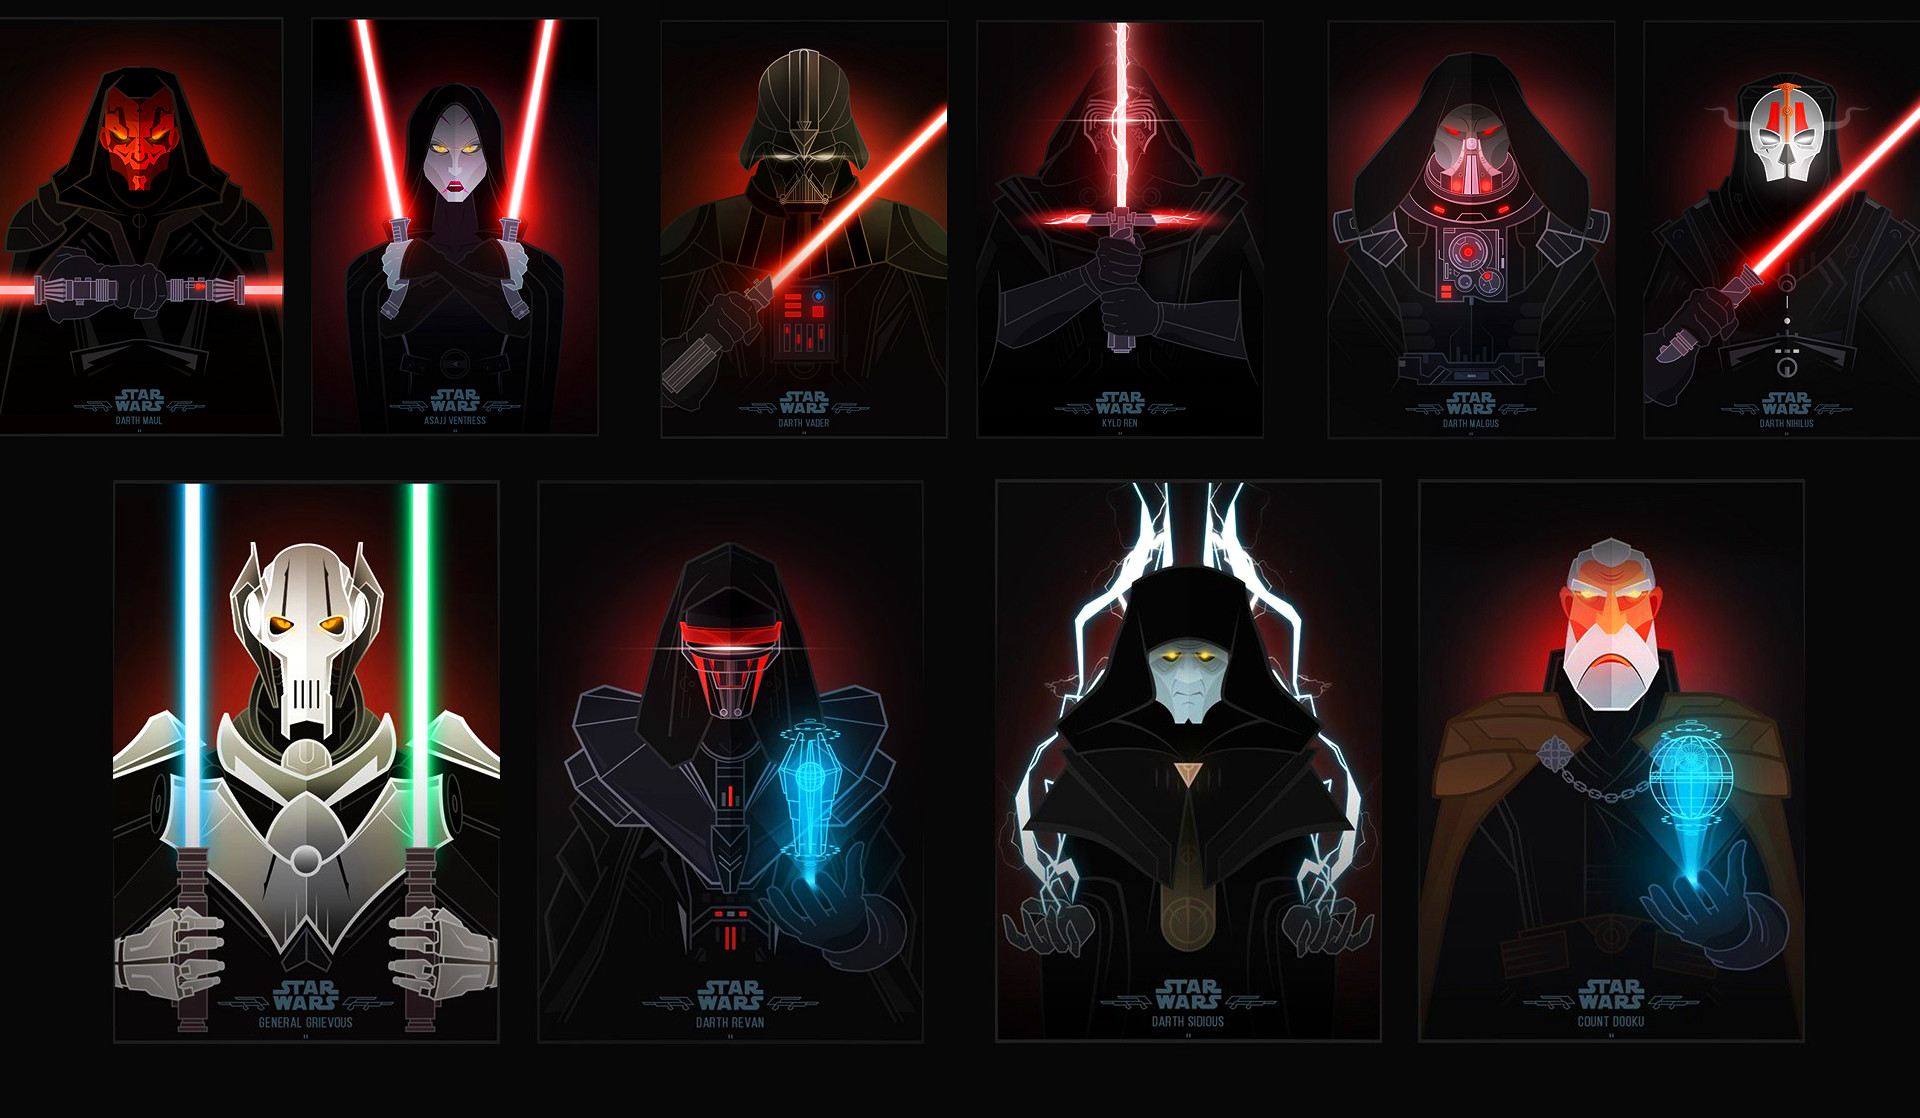 Star Wars Revan Wallpaper 74 Images